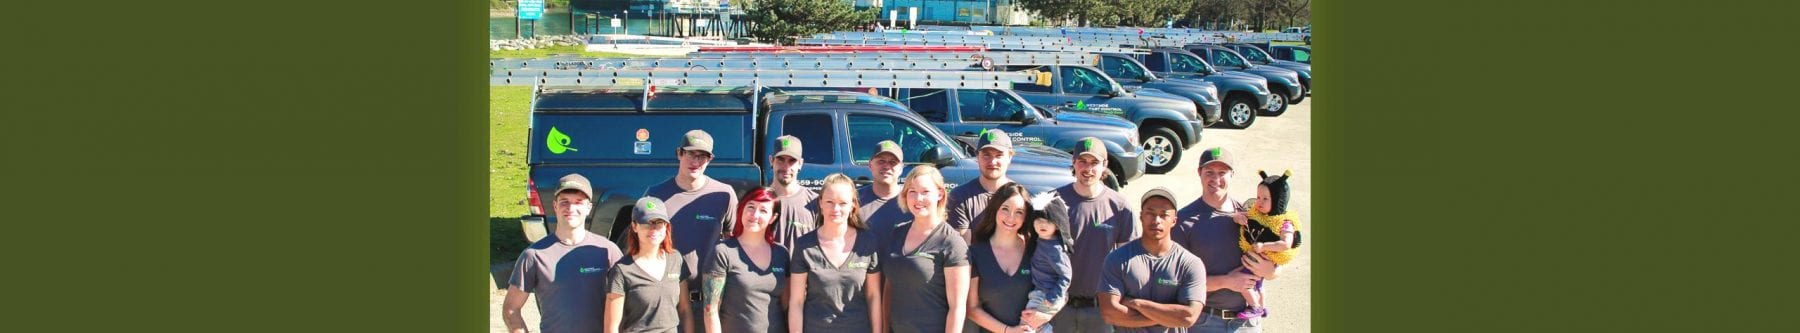 Westside Pest Control Staff and Trucks